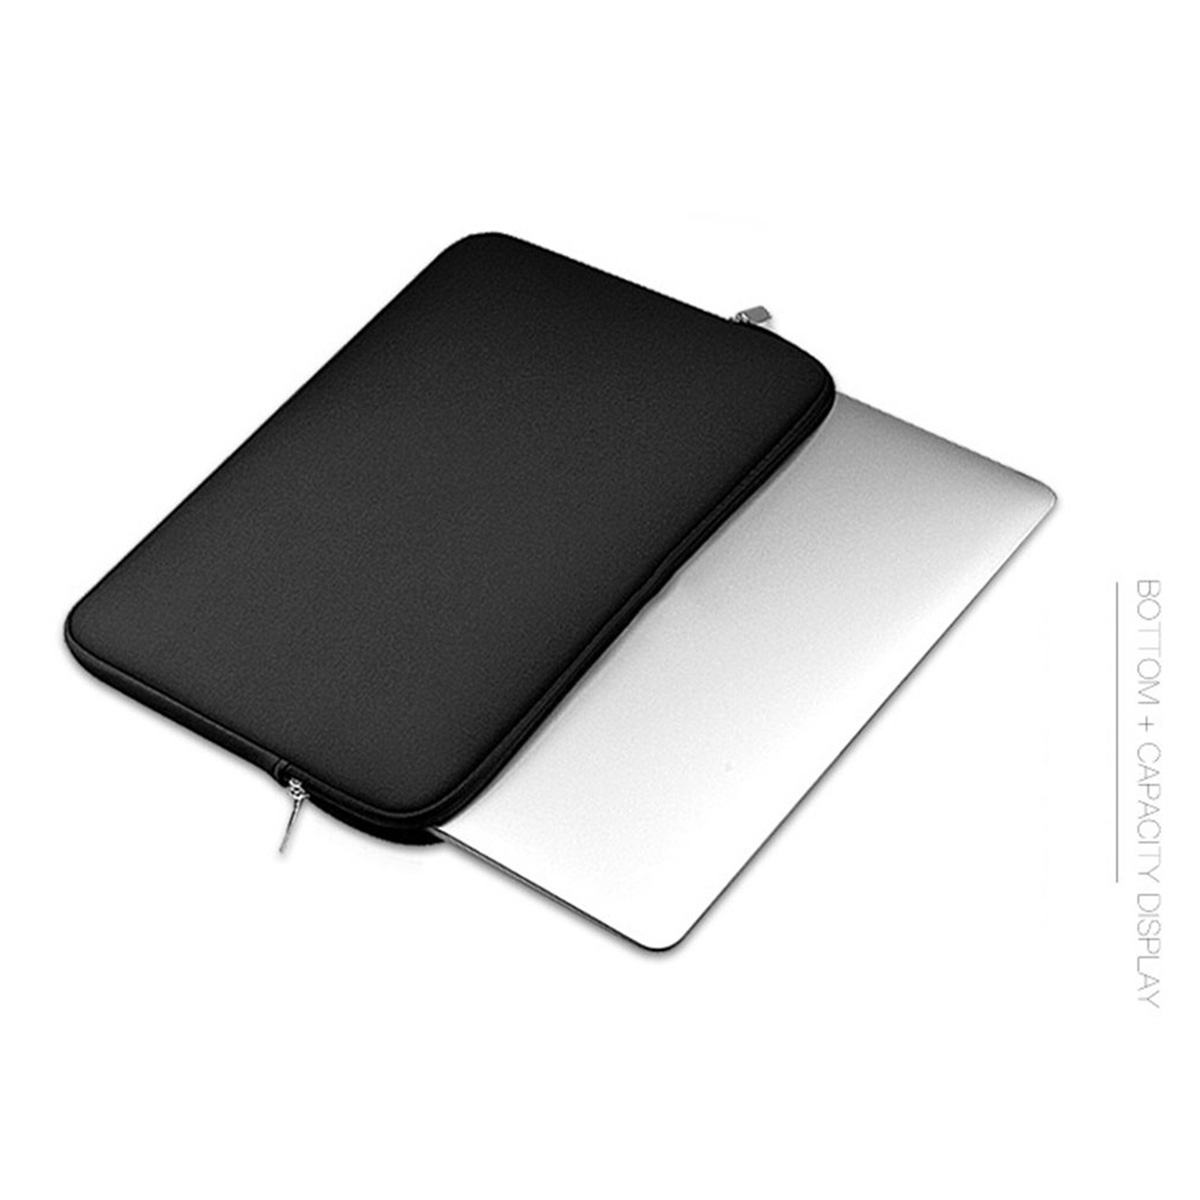 Laptop Sleeve 14 15.6 Inch Notebook Bag 13.3 for MacBook Air Pro 13 Case Laptop Bag 11 13 15 Inch Protective Case Computer Case image